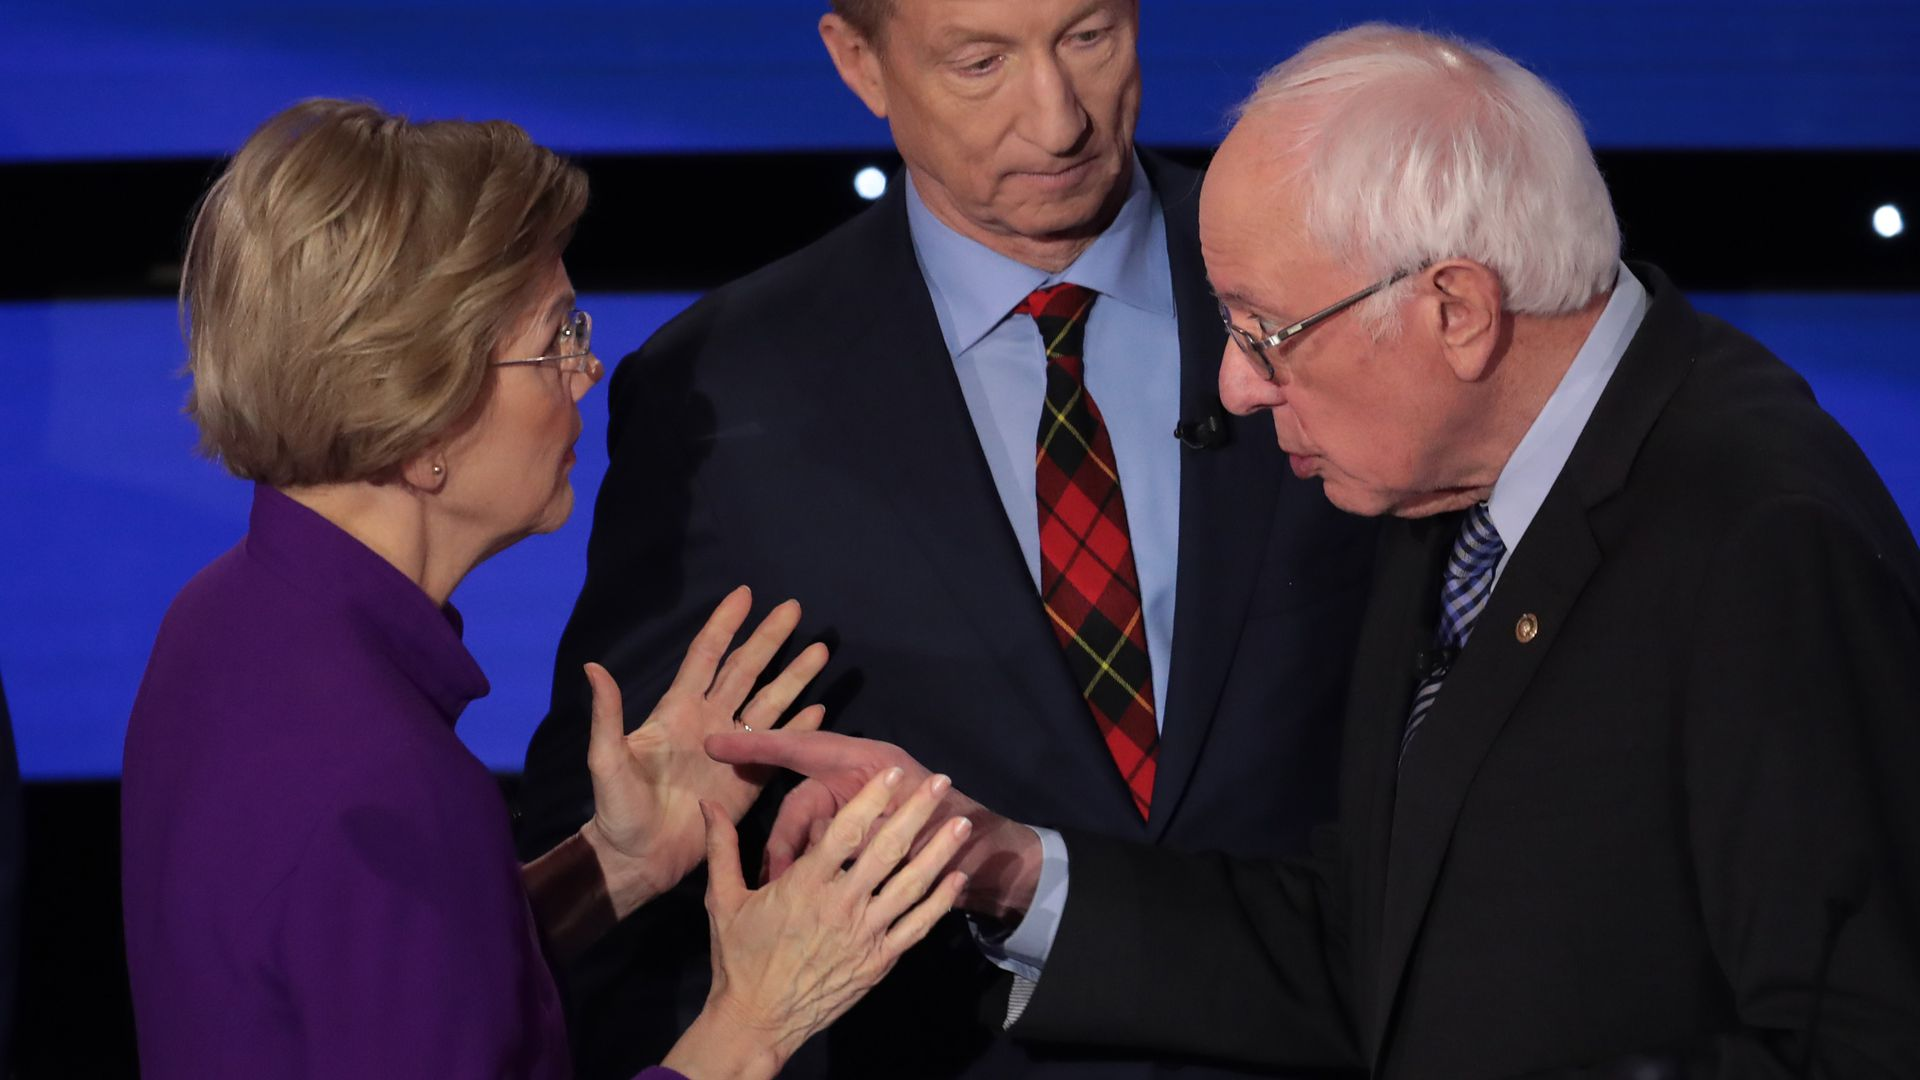 Elizabeth Warren and Bernie Sanders have a heated conversation in the moments following Tuesday's Democratic debate.